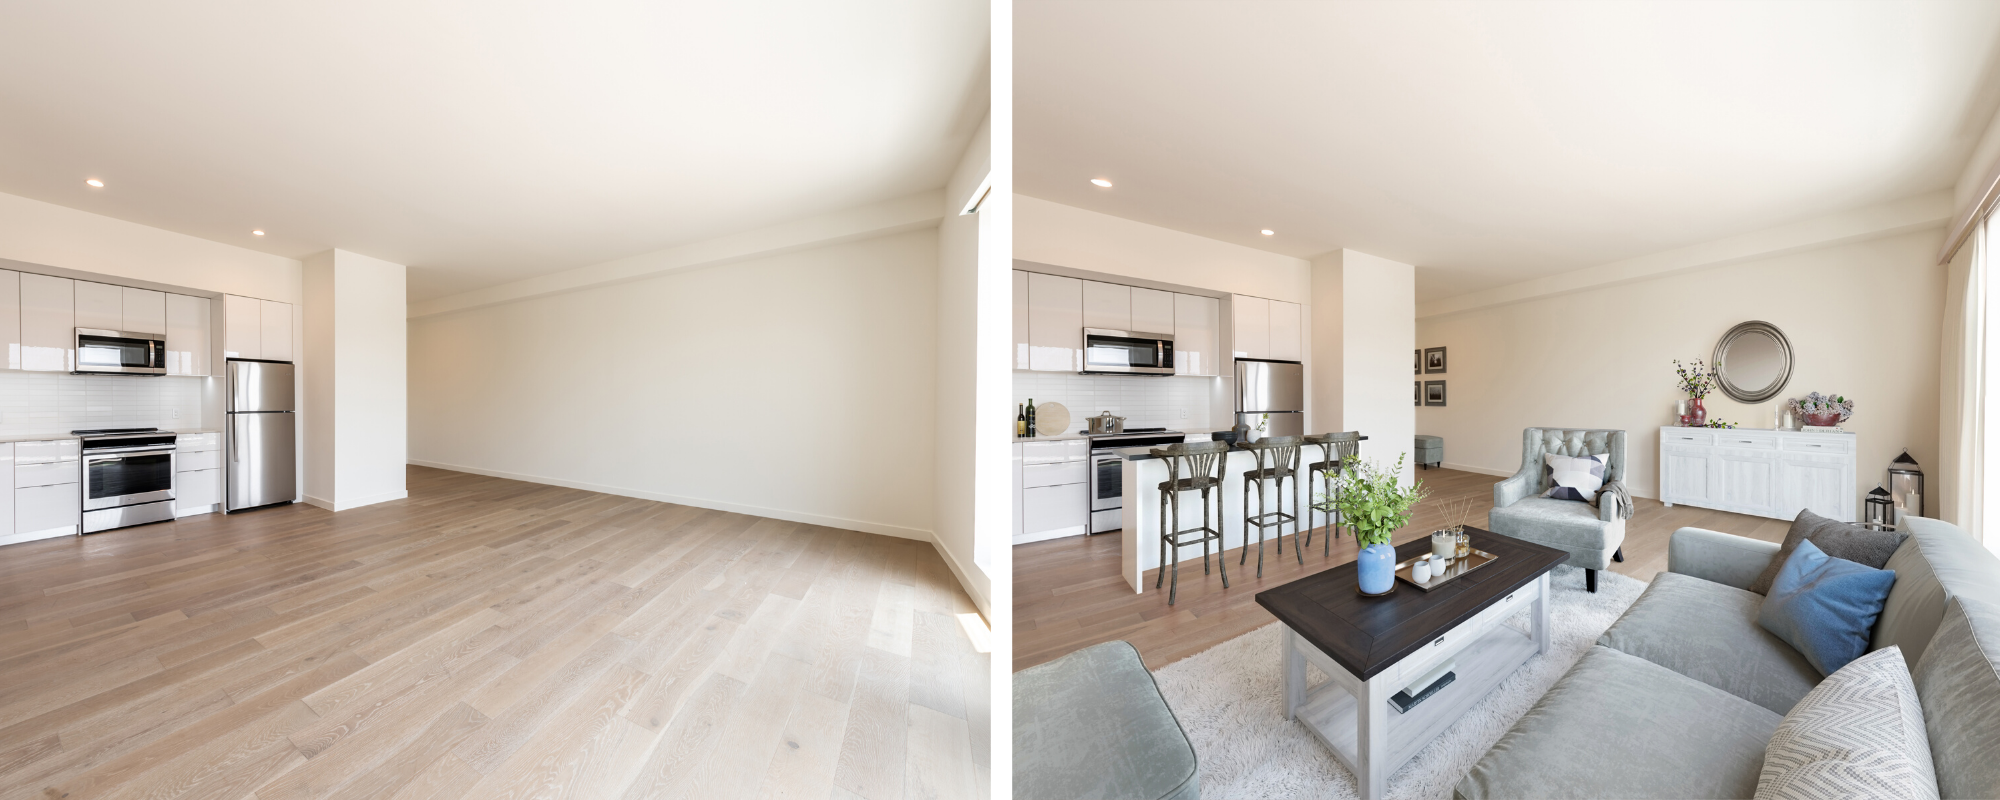 16 Stunning Apartment Virtual Staging Before and After Photos